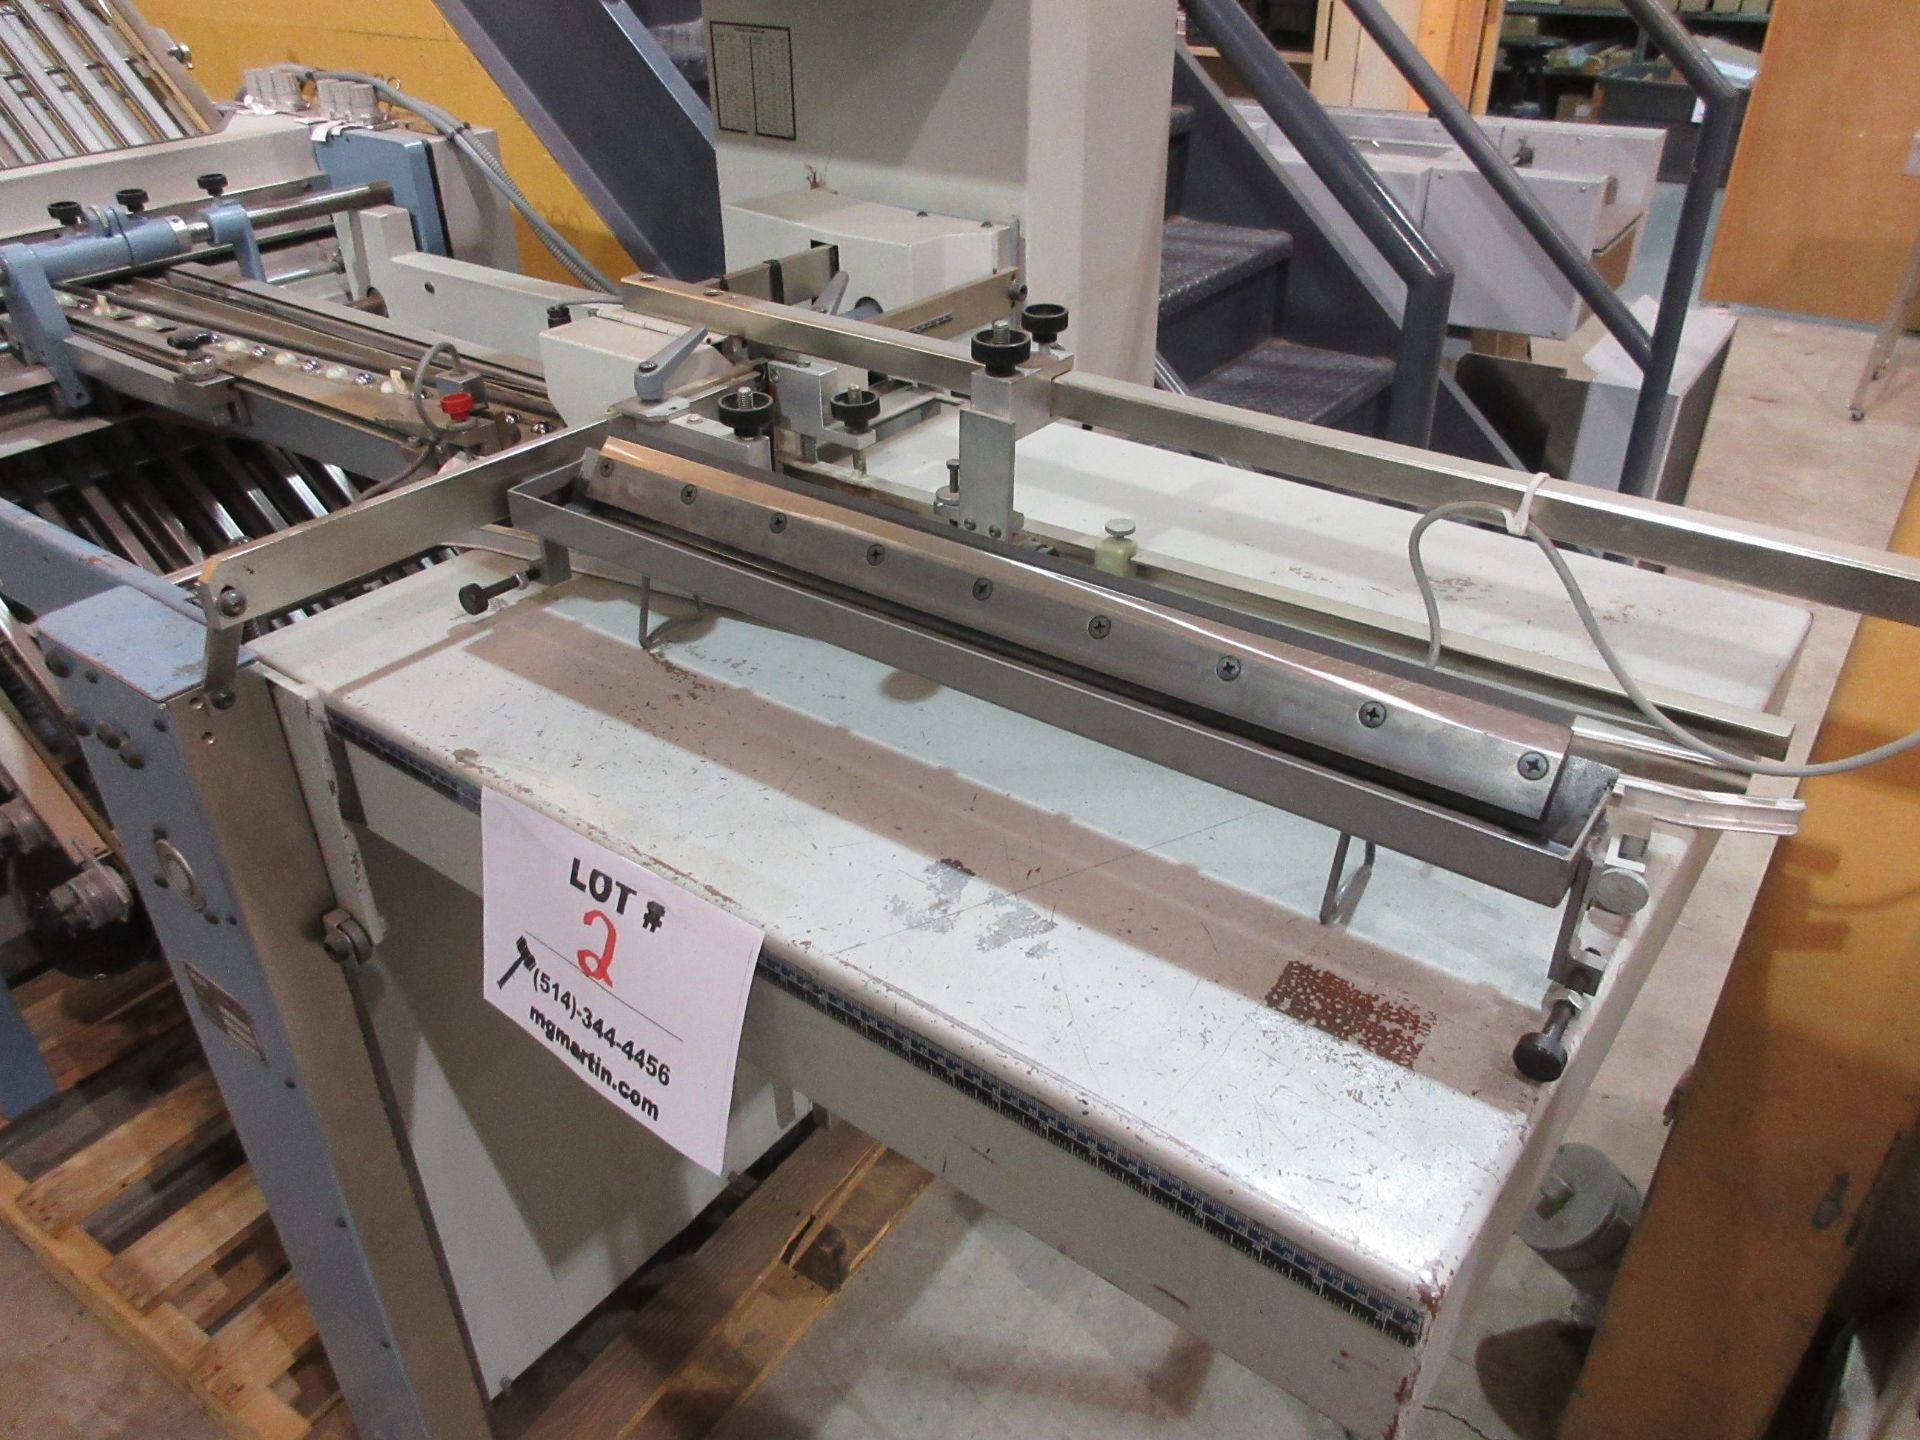 MBO folder c/w pile feeders (type: A49-DC / type: T49-1-49/4) - Image 4 of 15